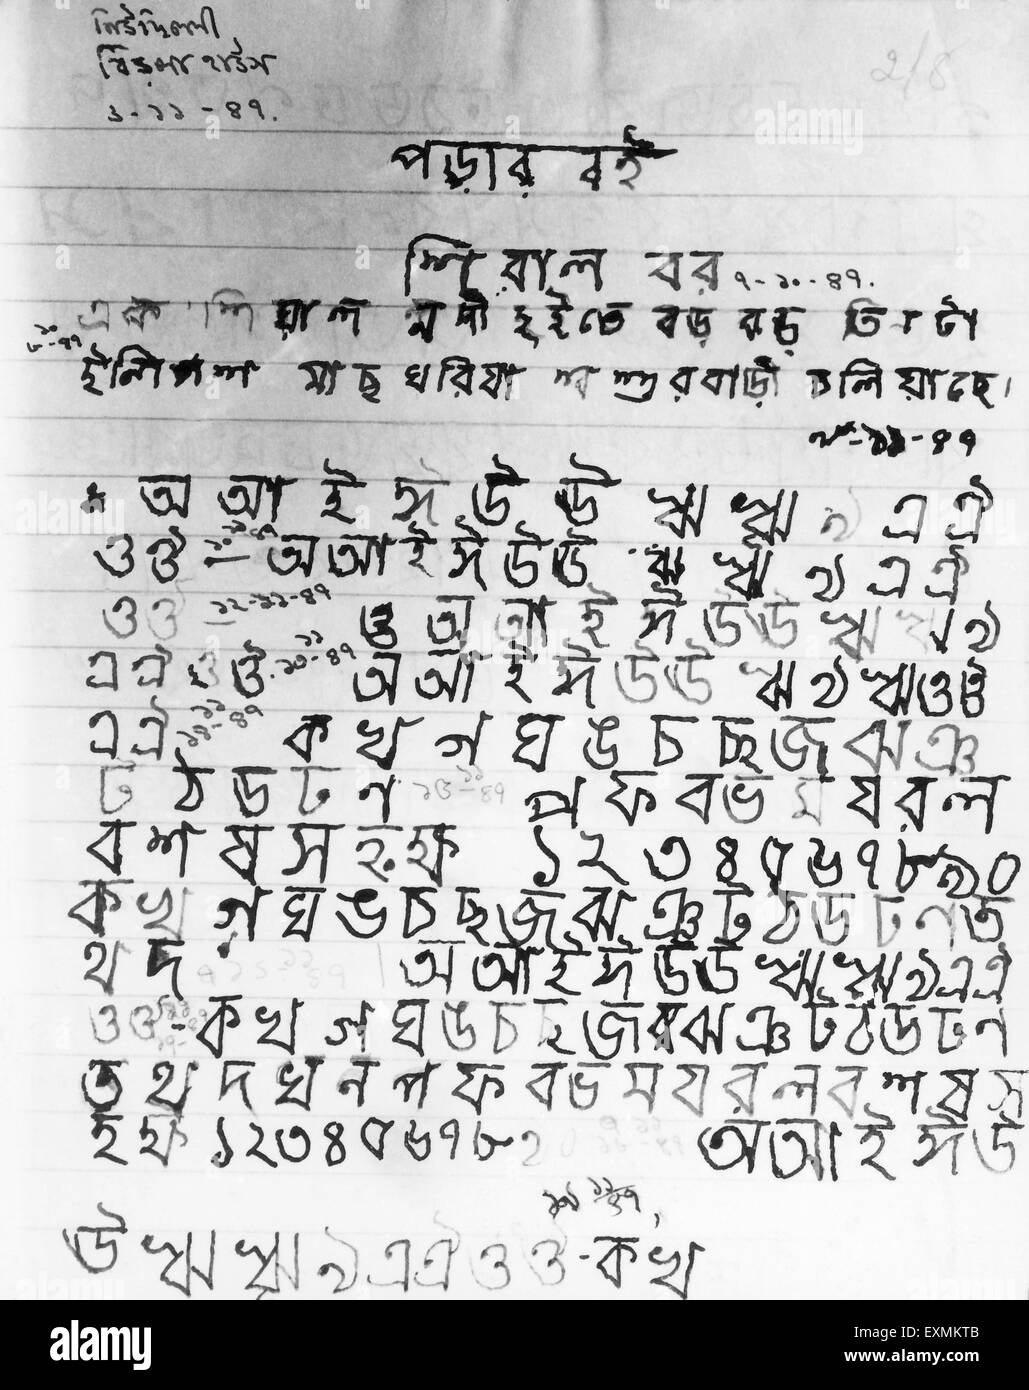 A letter in Bengali script written by Mahatma Gandhi ; 1947 ; India NO MR - Stock Image